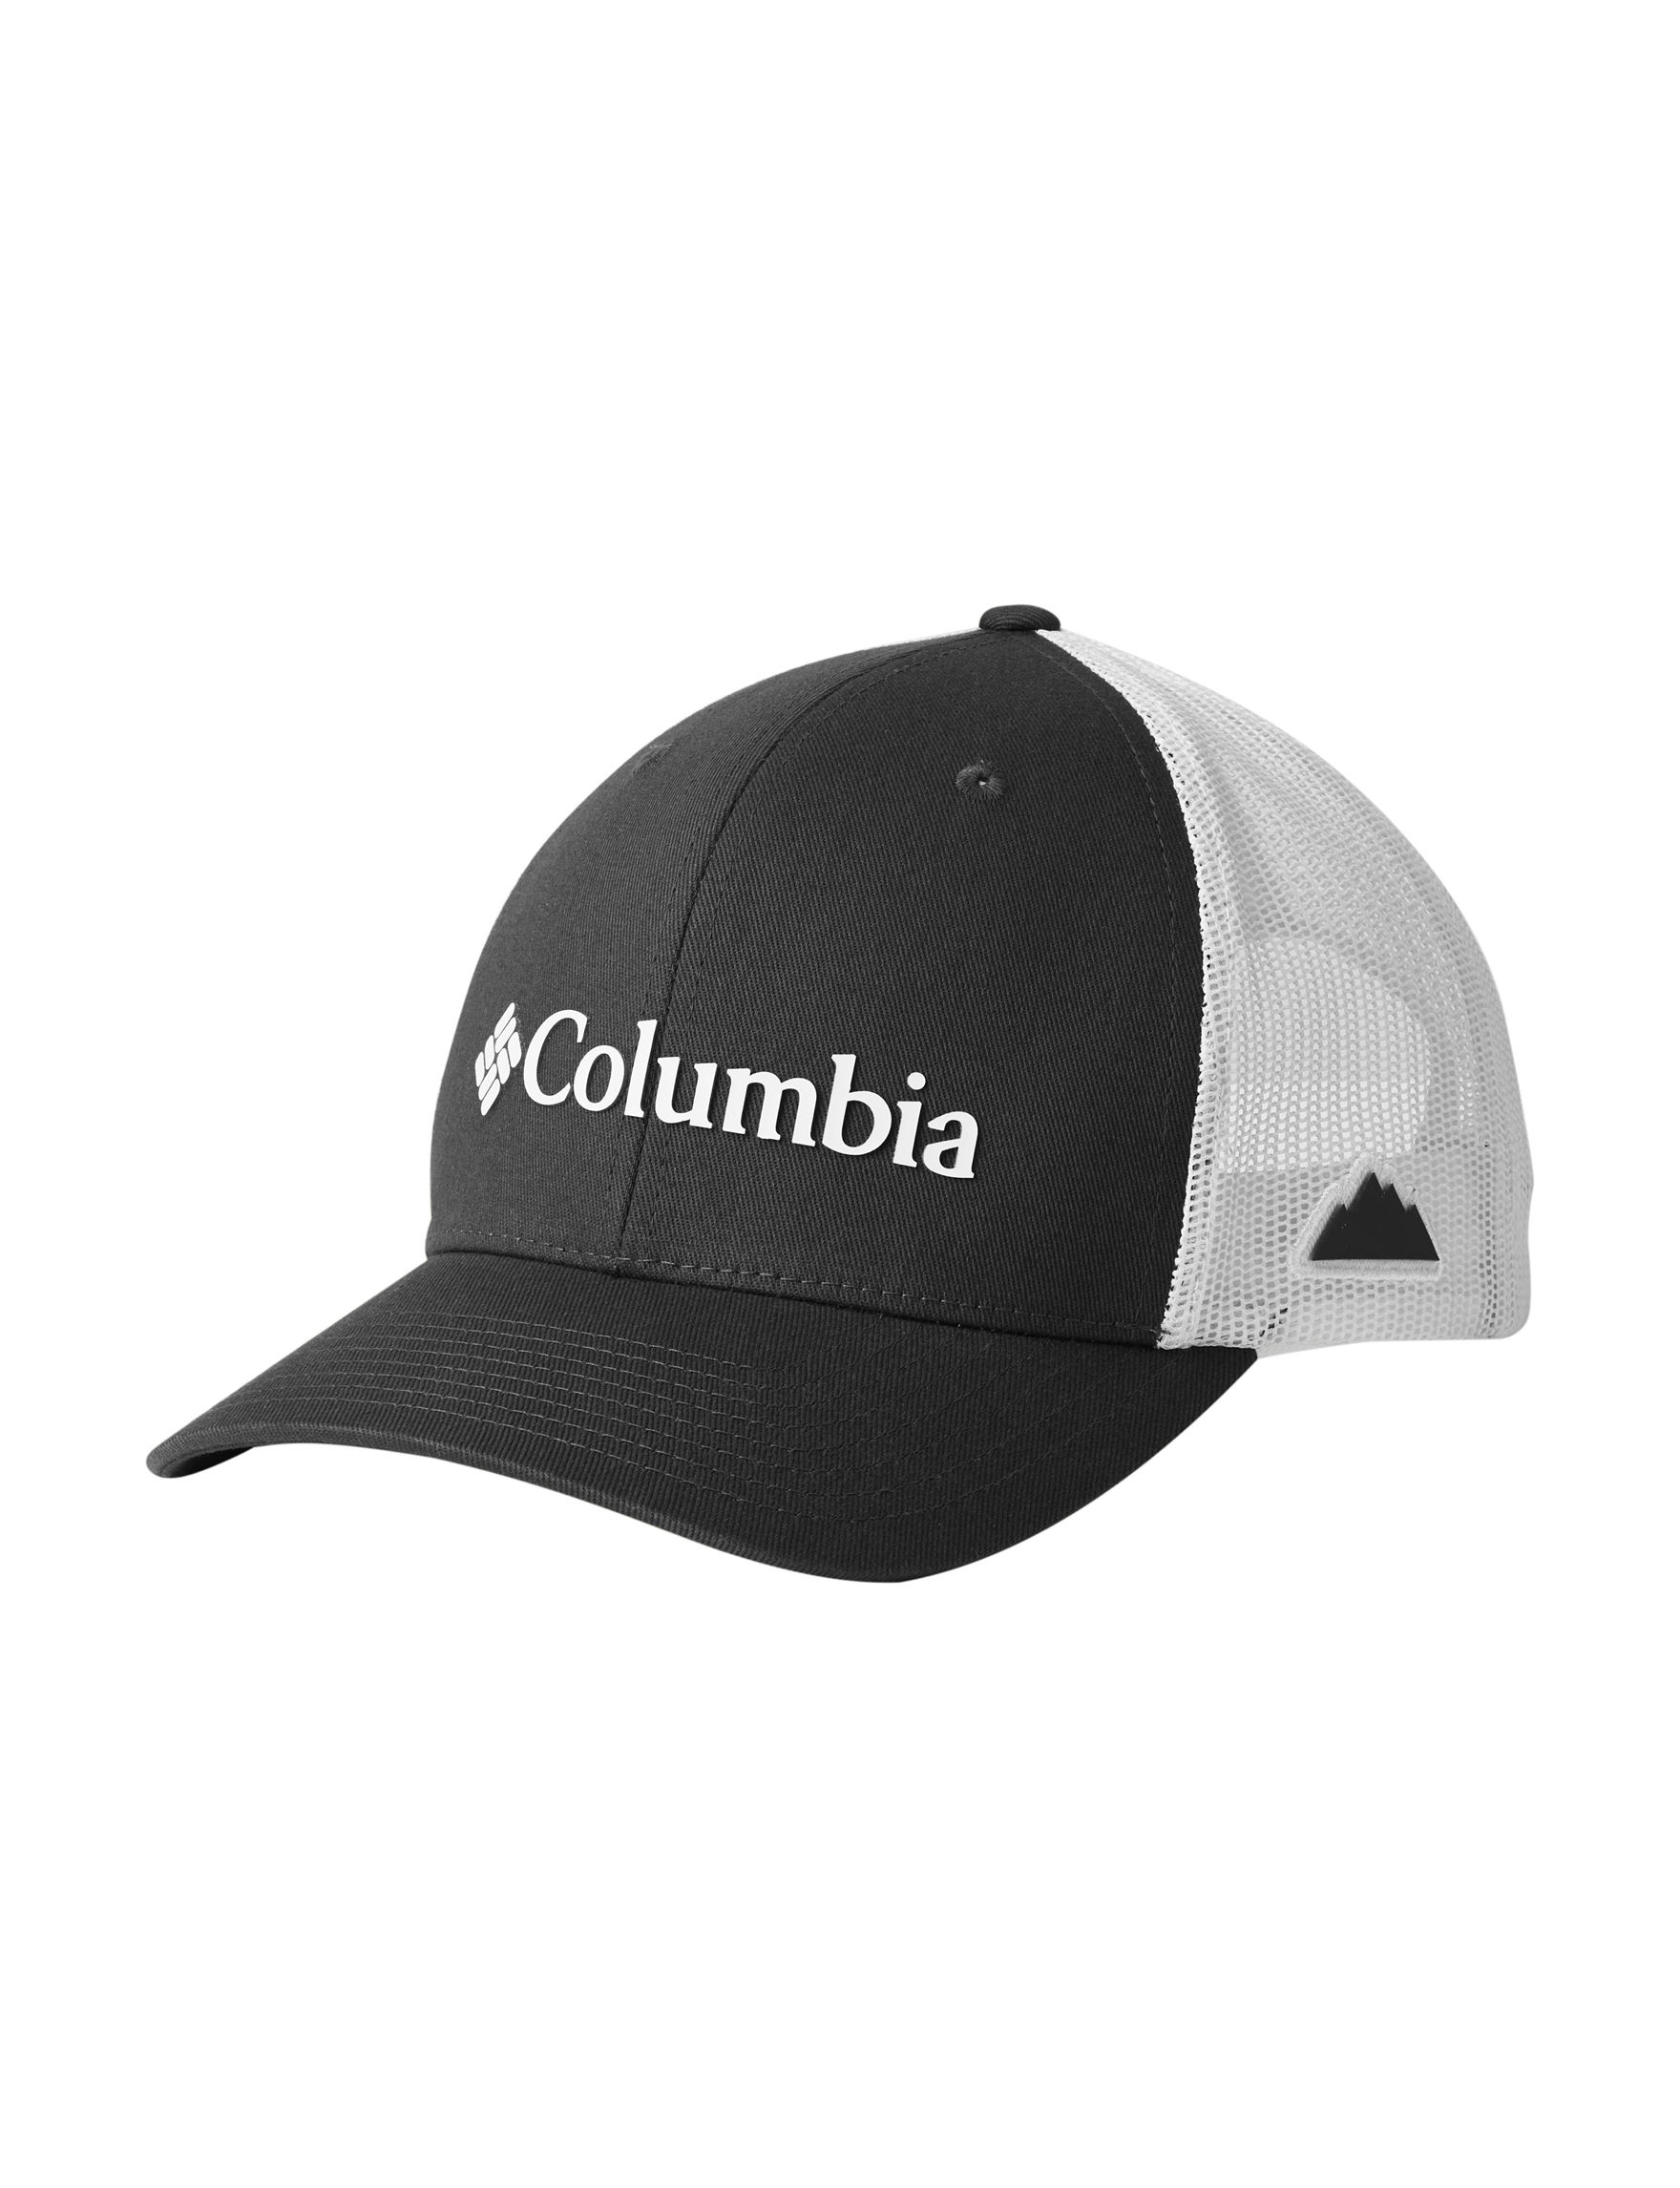 Columbia Black / Grey Hats & Headwear